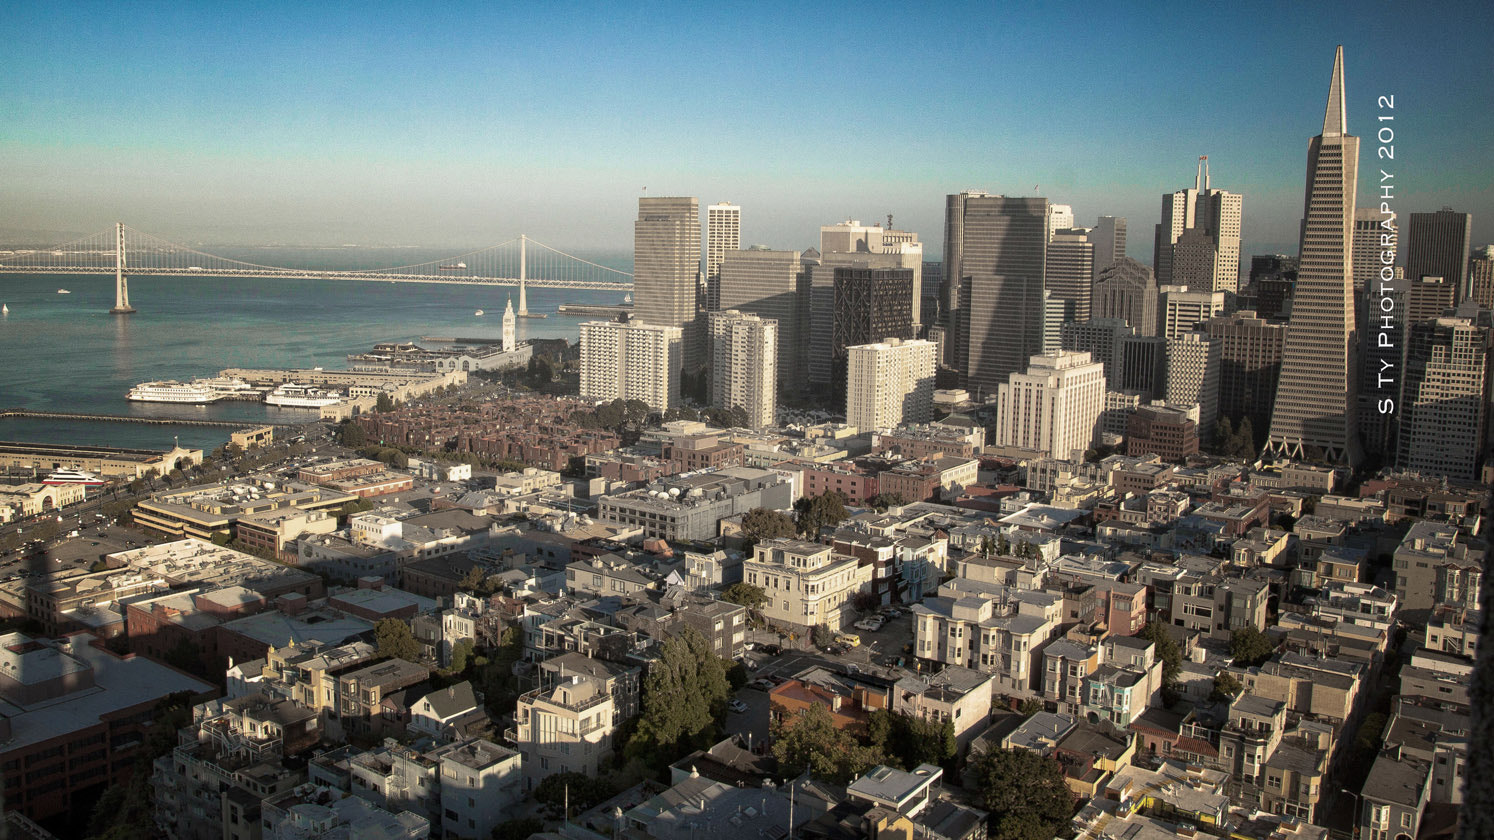 Photograph I Left My ❤ in San Francisco by Stew  on 500px